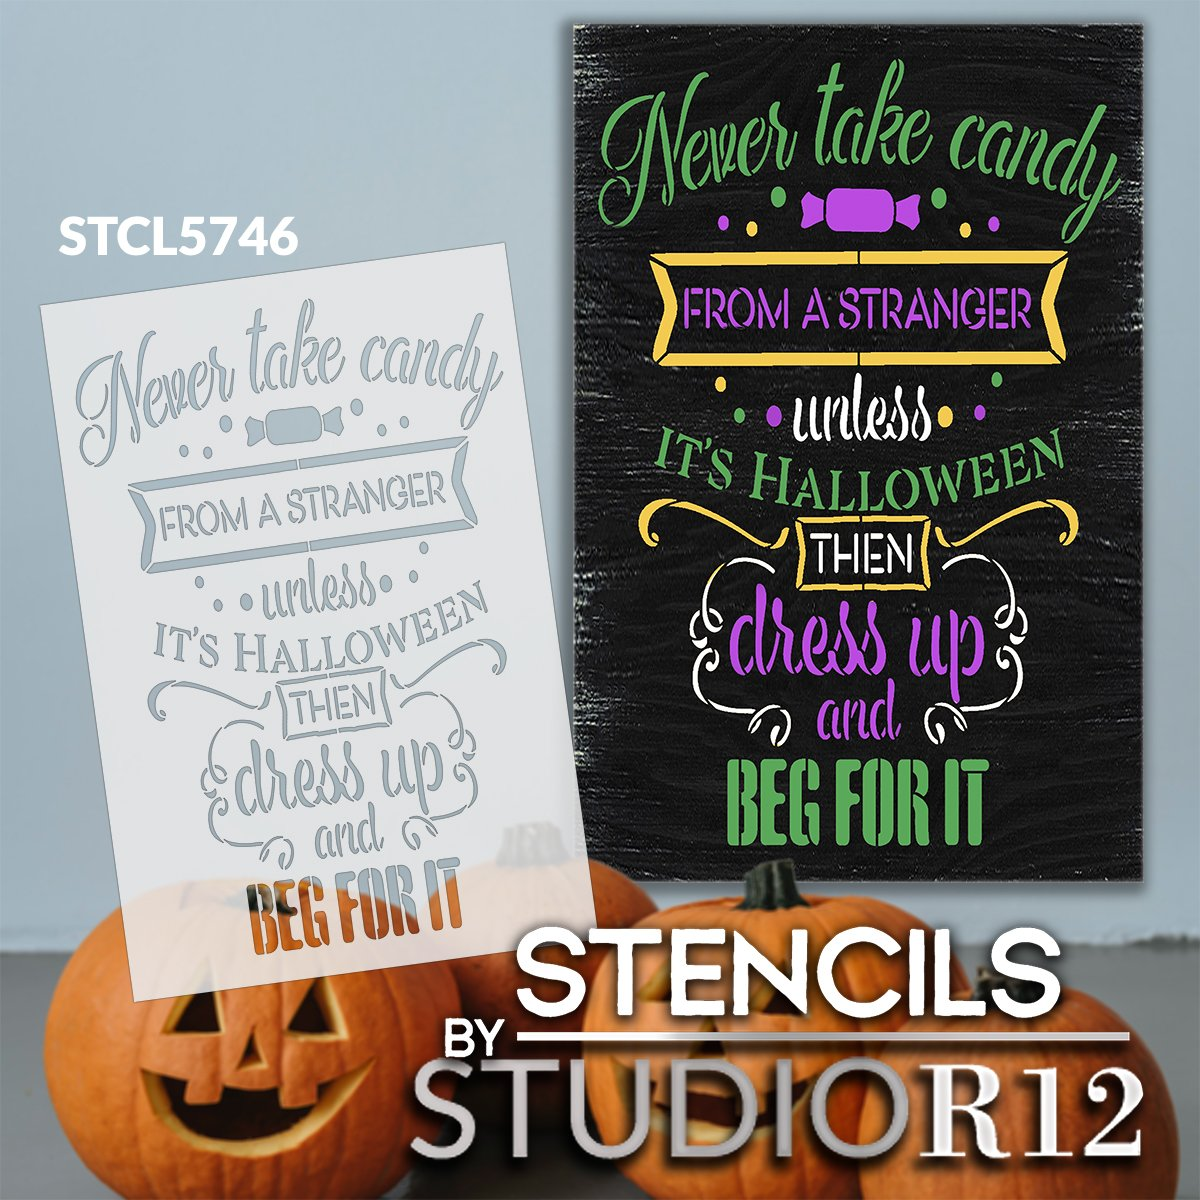 Candy from Strangers - Dress Up & Beg Stencil by StudioR12 | DIY Halloween Home Decor | Craft & Paint Wood Sign Reusable Mylar Template | Select Size